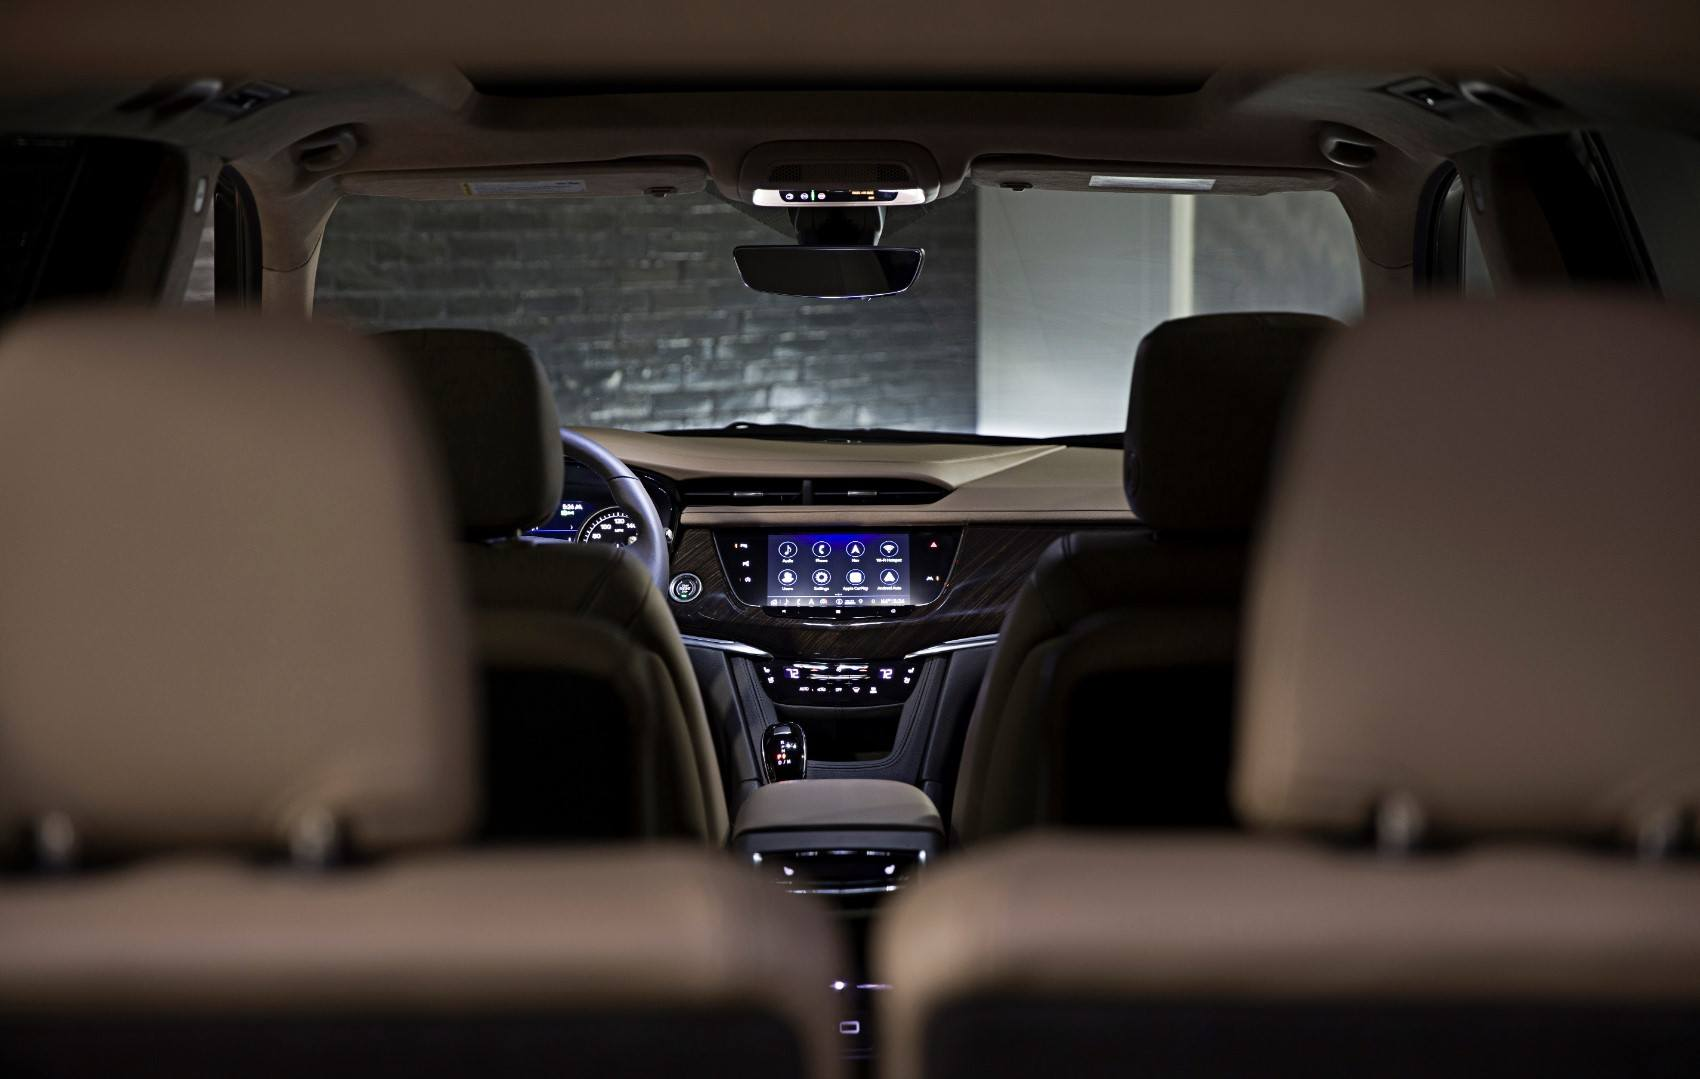 2020 Cadillac XT6, Premium Luxury interior layout.